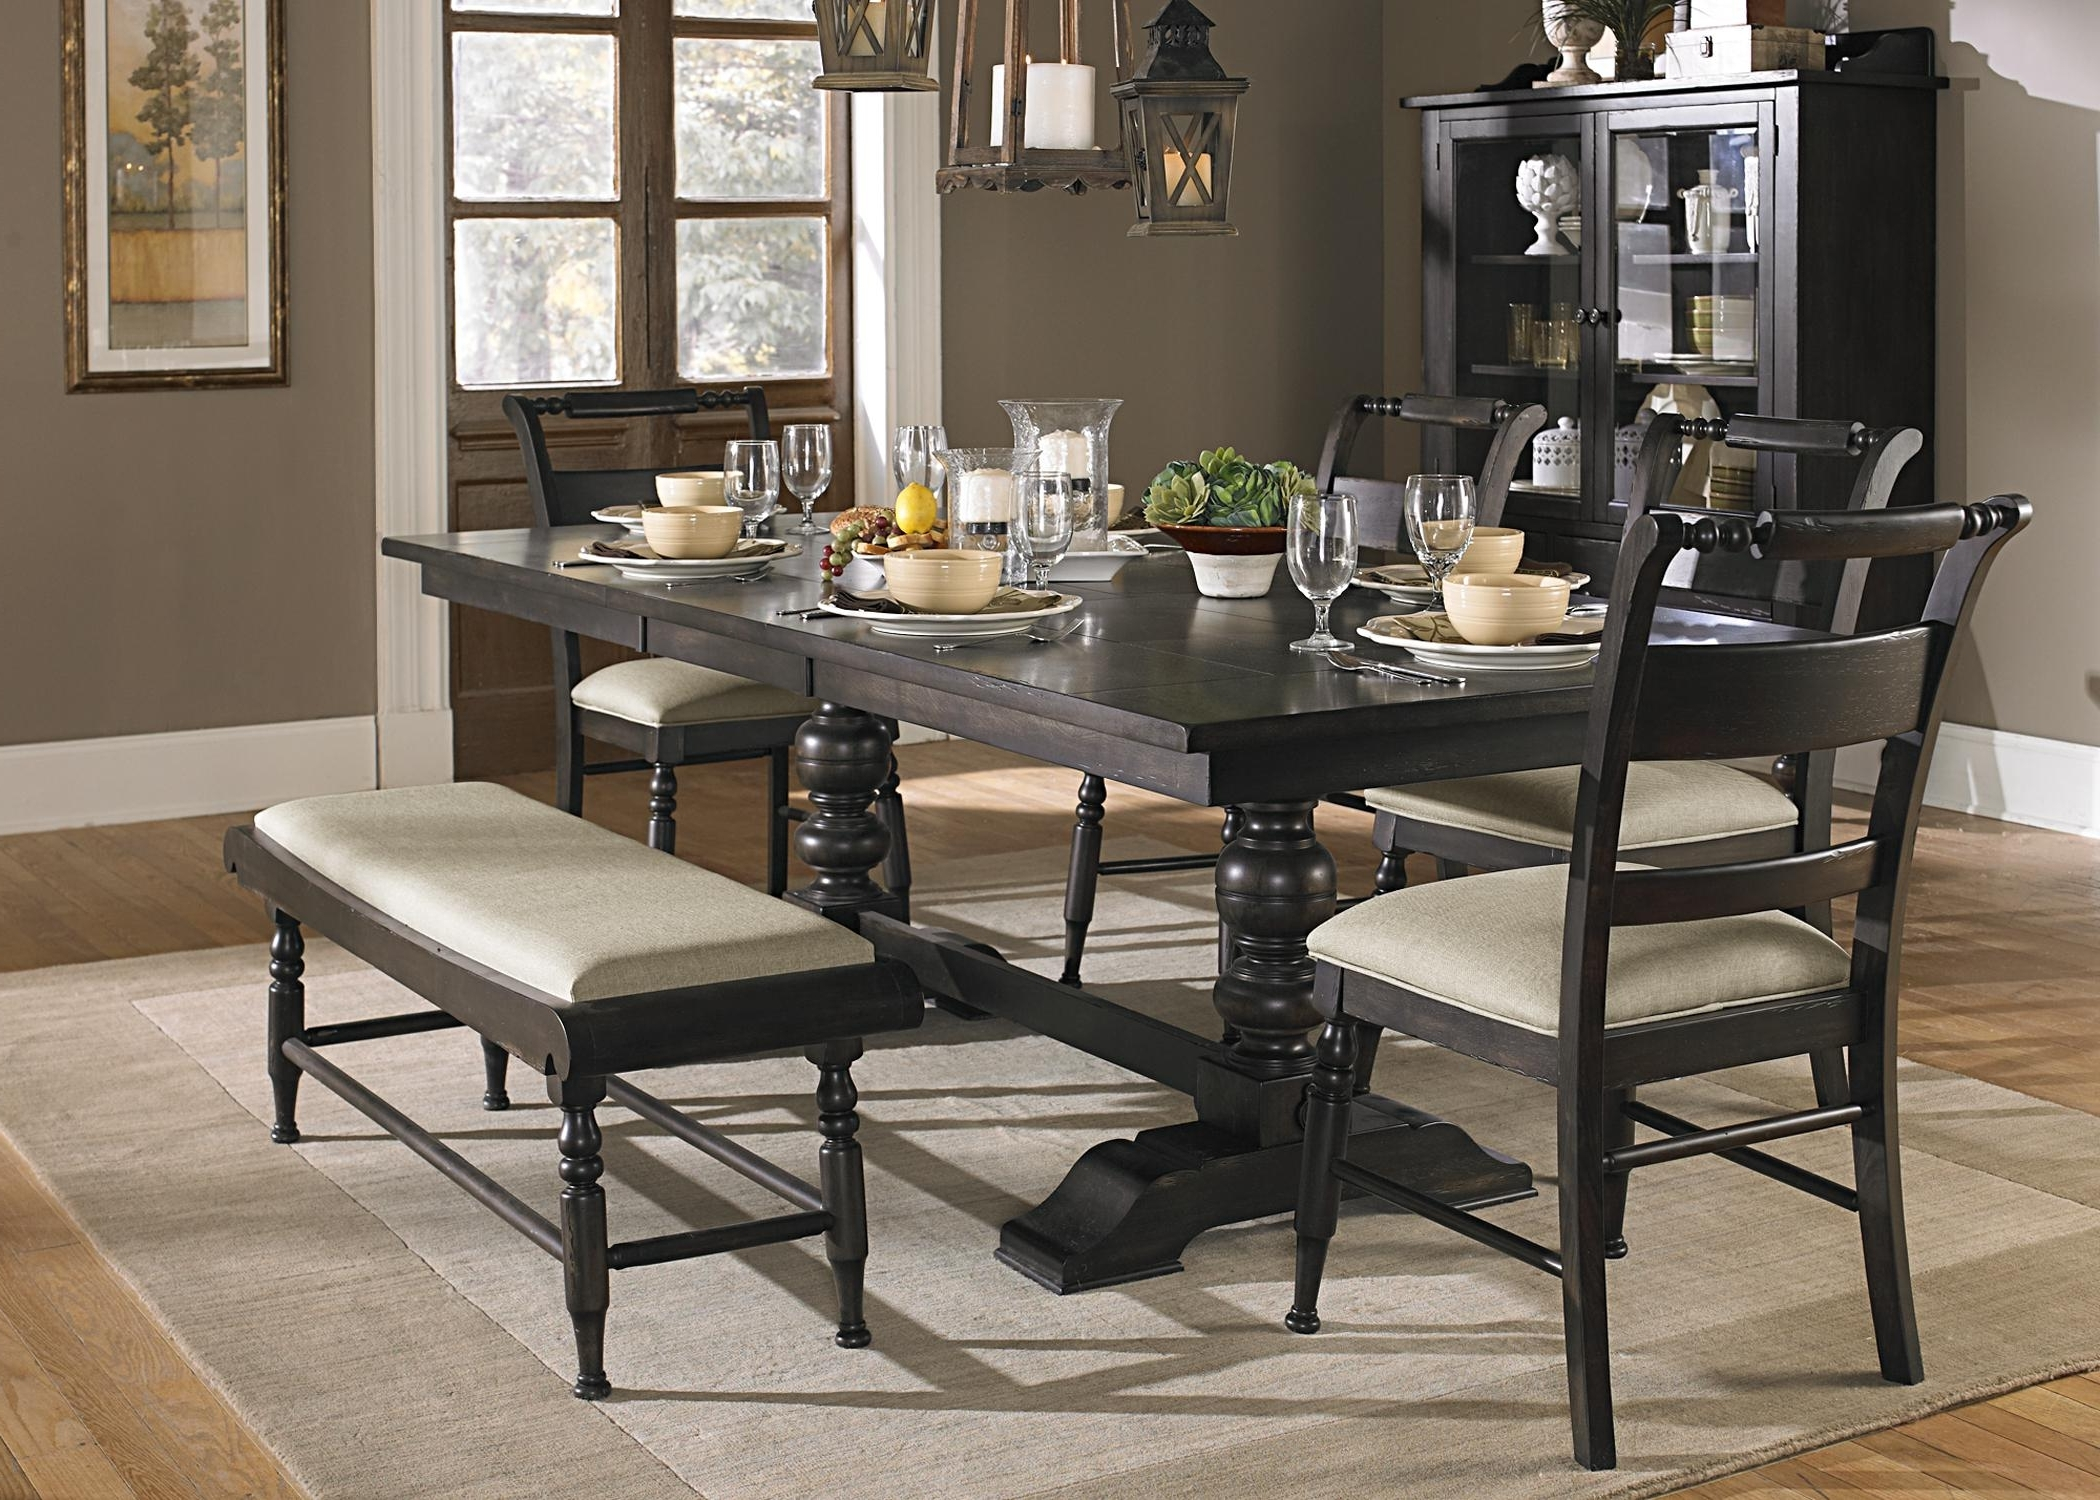 Widely Used Sofa Chairs With Dining Table With Regard To Liberty Furniture Whitney 7 Piece Trestle Dining Room Table Set (View 19 of 20)